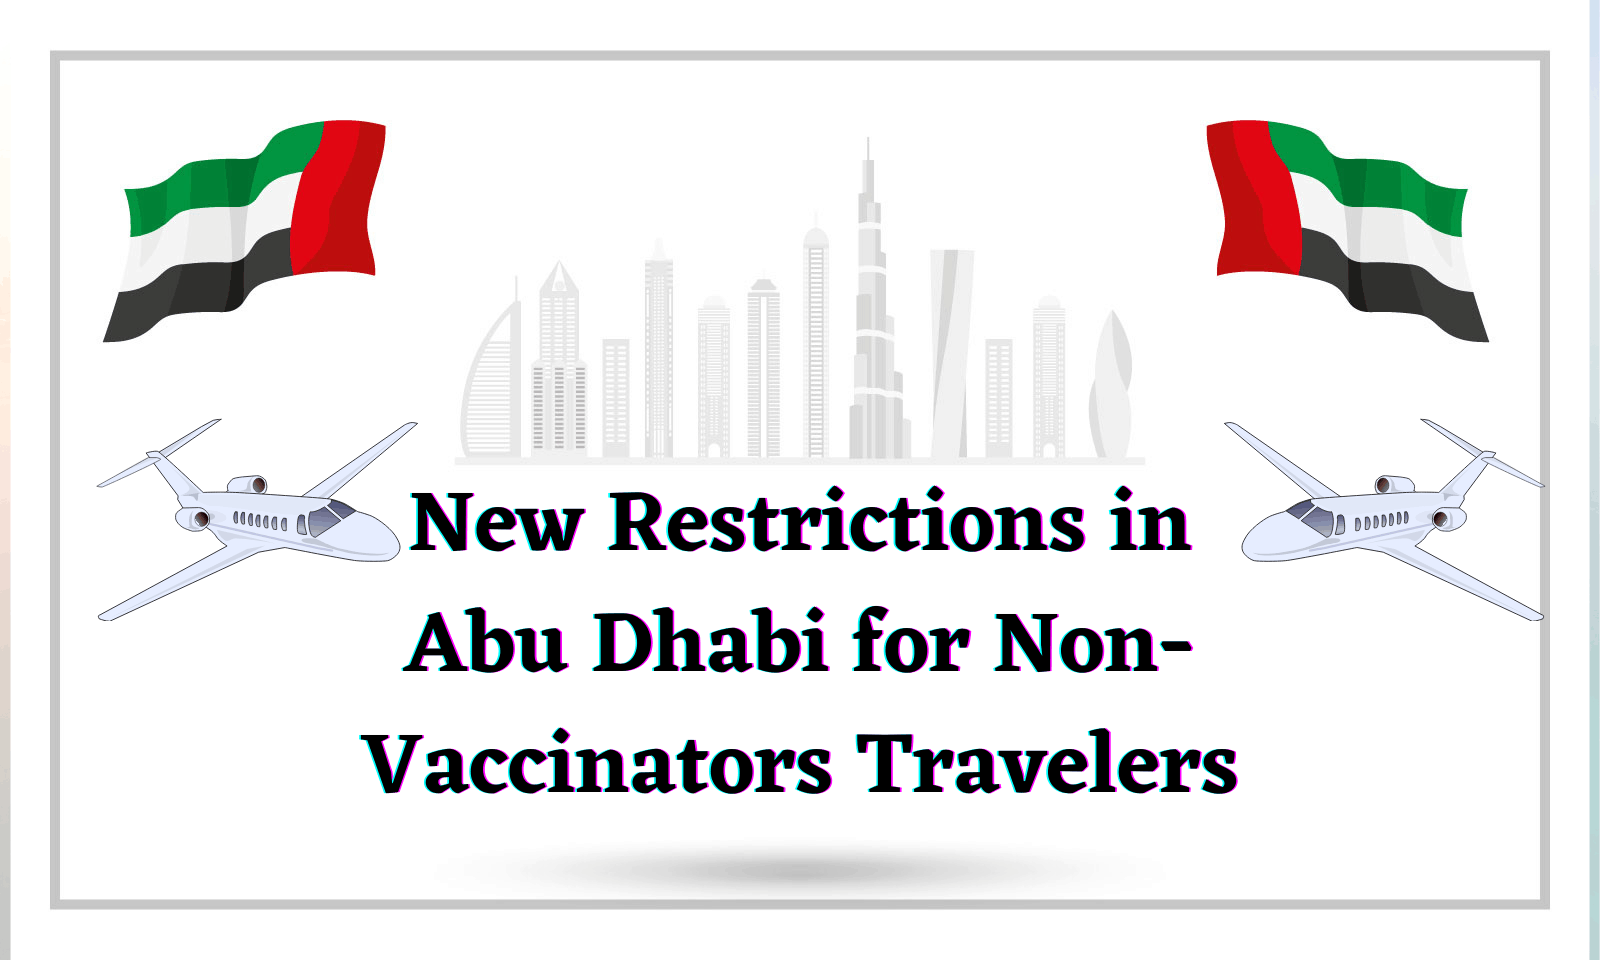 New Restrictions in Abu Dhabi for Non-Vaccinators Travelers